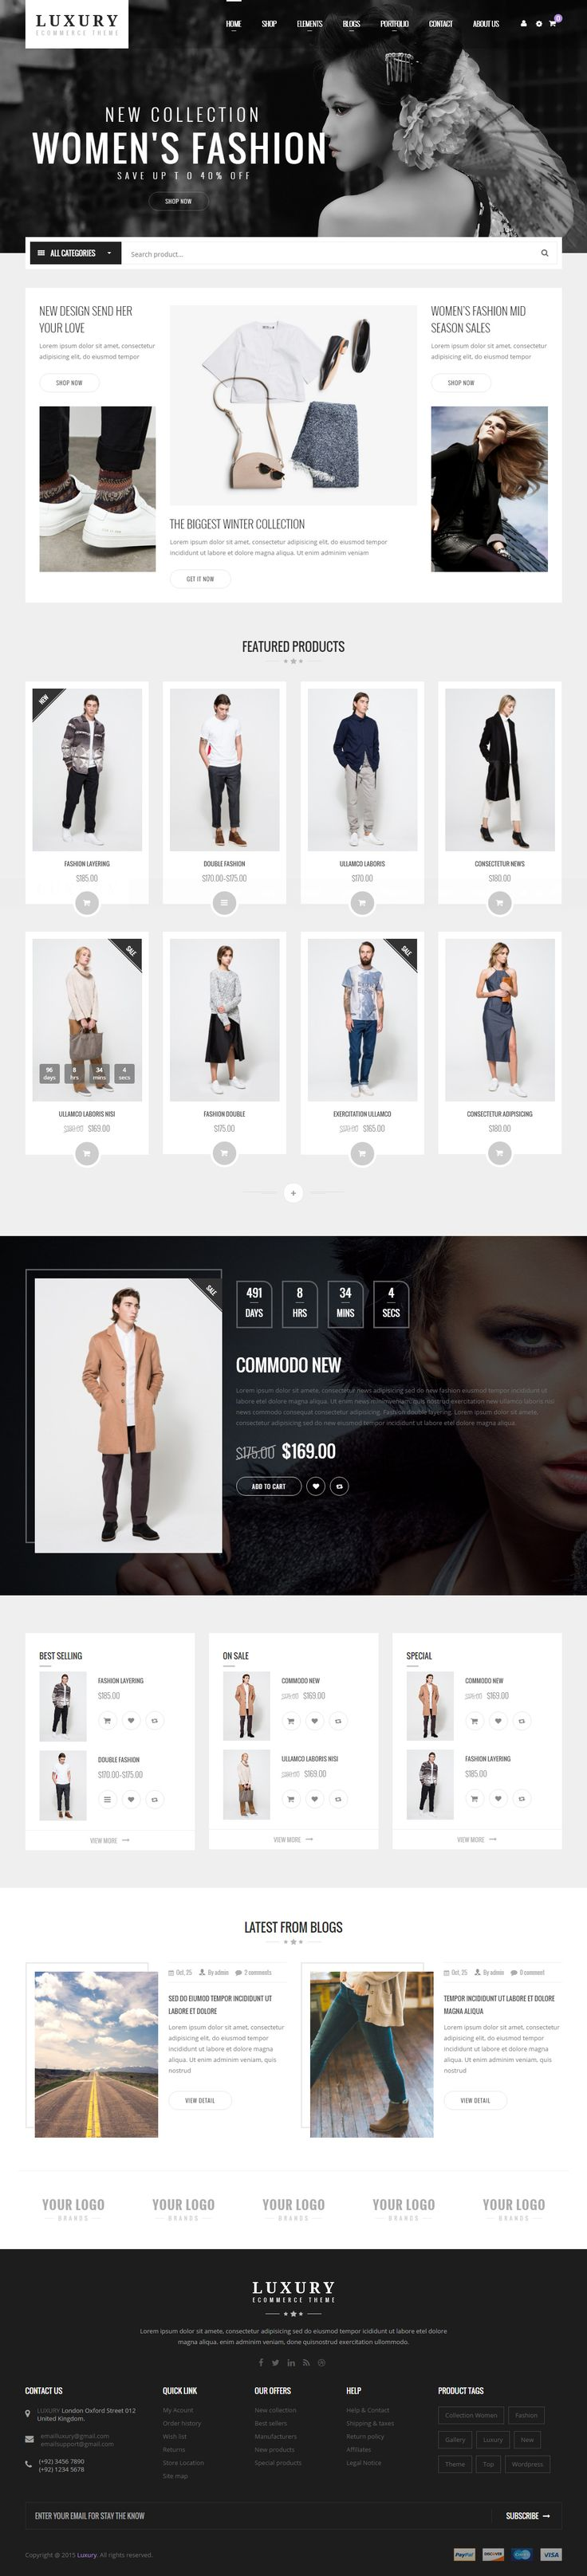 Luxury is Premium full Responsive Retina #WordPress #eCommerce Theme. WooCommerce. Visual Composer. #Bootstrap 3. Ajax Cart. Test free demo at: http://www.responsivemiracle.com/luxury-premium-responsive-woocommerce-wordpress-theme/